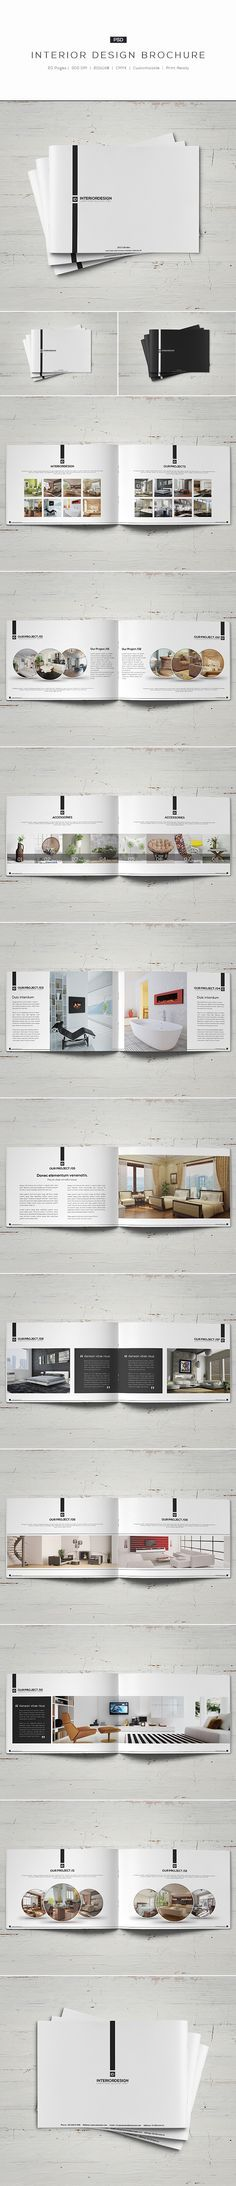 Interior Design Brochure on Behance - luxury brochure layout - interior design brochure template